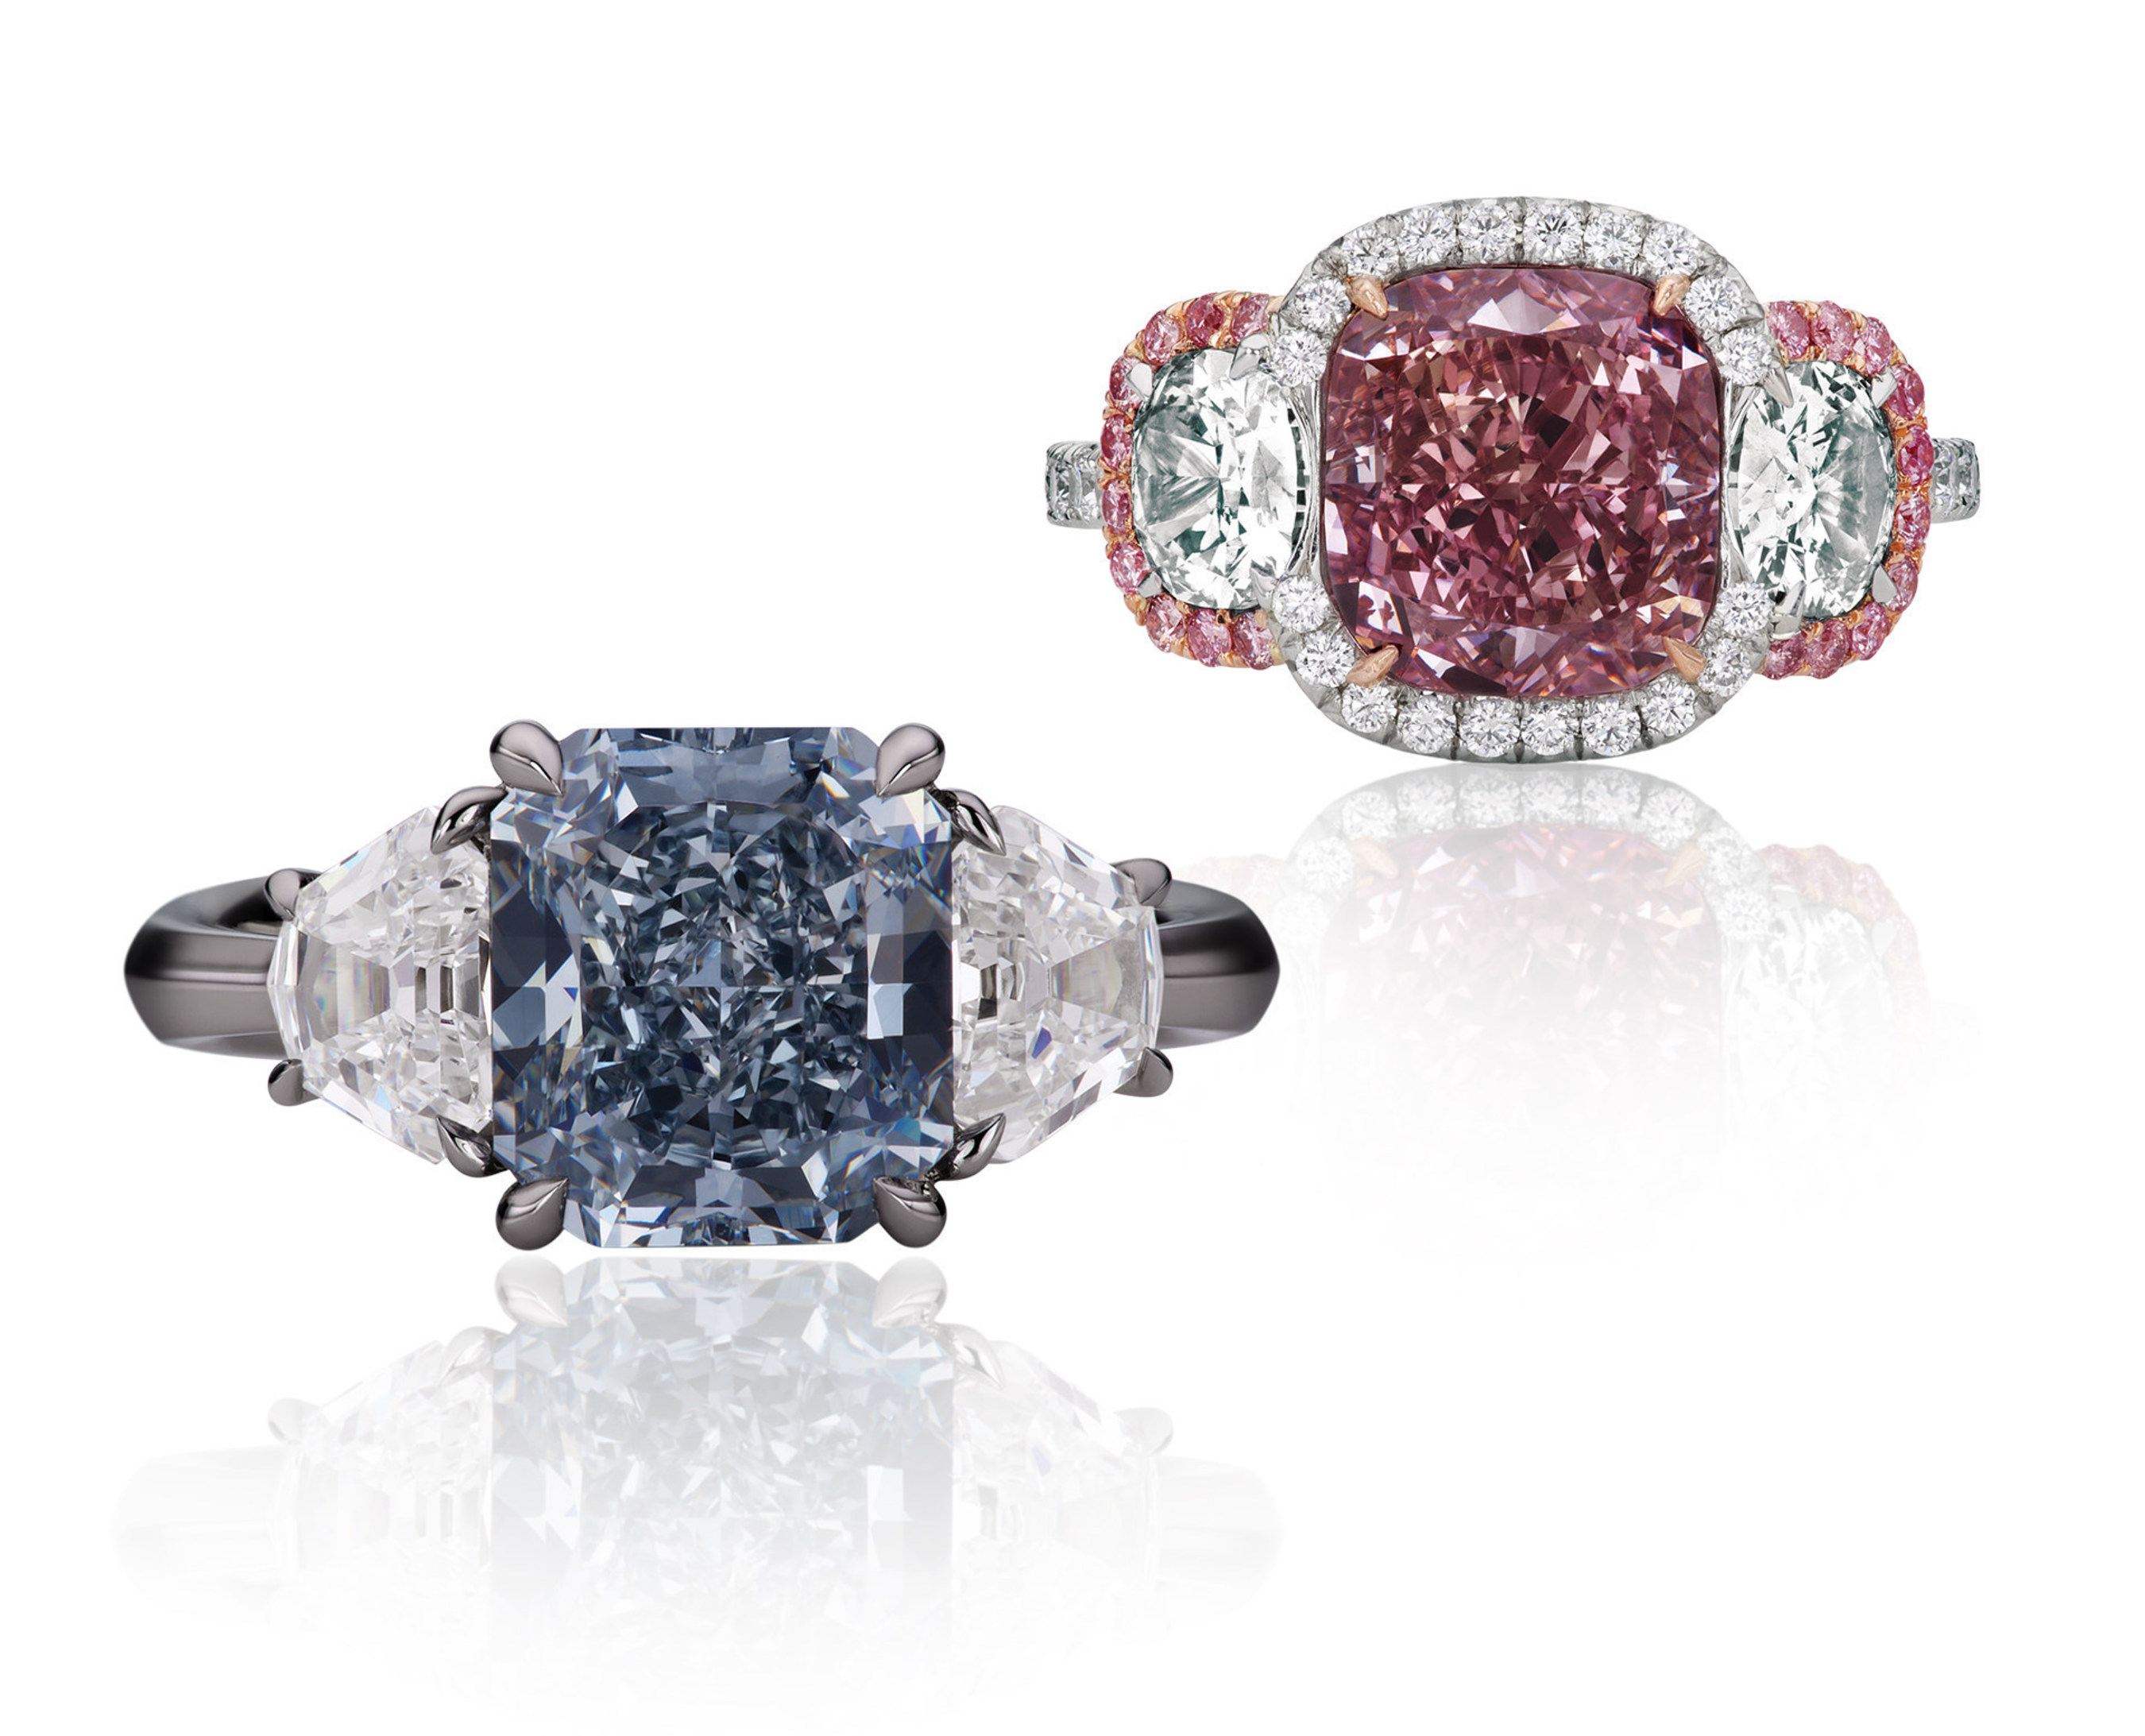 Radiant-Cut Fancy Intense Blue Diamond Ring: Internally Flawless Fancy Intense Blue Diamond, 3 Carats, Set in Platinum with 2 White Diamonds.   Cushion-Cut Fancy Intense Purple-Pink Diamond Ring: Rare Fancy Intense Purple-Pink Diamond, 3 Carats, SI1, Set in Platinum and 18K Rose Gold with 2 White Diamonds, and Surrounded by Argyle Pink Diamonds and White Diamonds. GIA Certified. Prices on request.